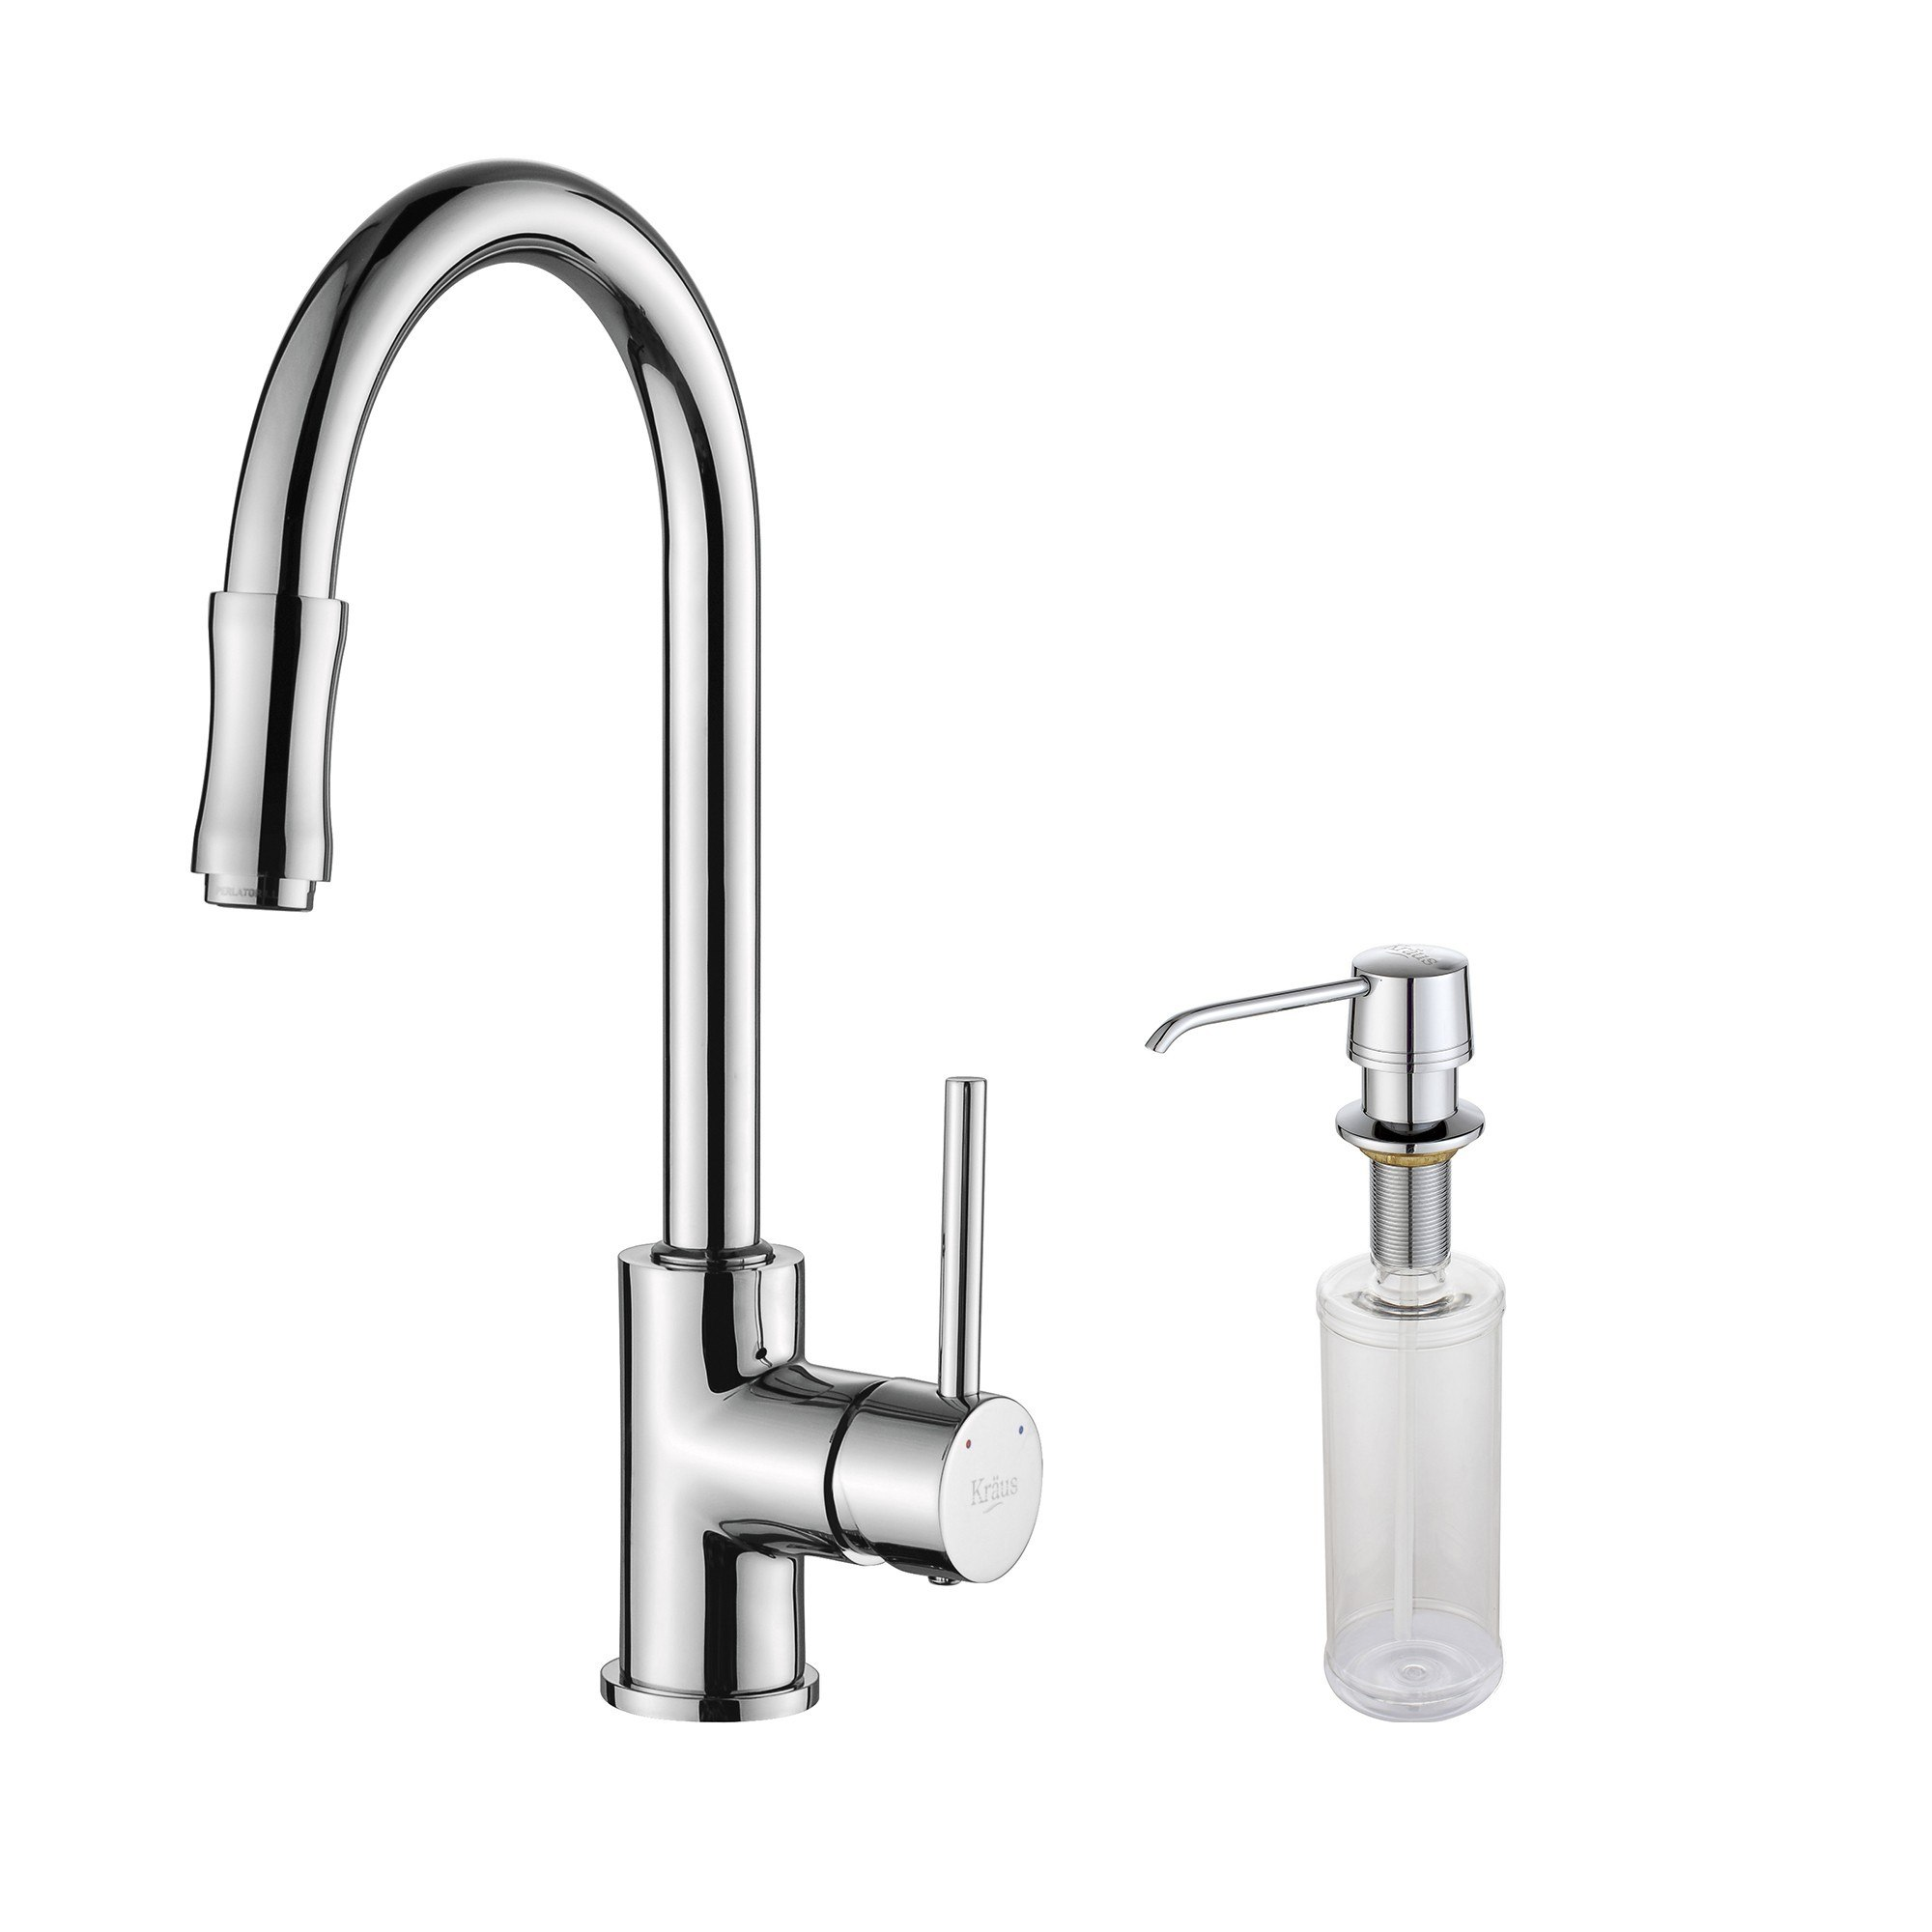 Where Are Kraus Faucets Made : Kraus KPF-1622-KSD-30 Single Lever Pull Out Kitchen Faucet & Soap ...